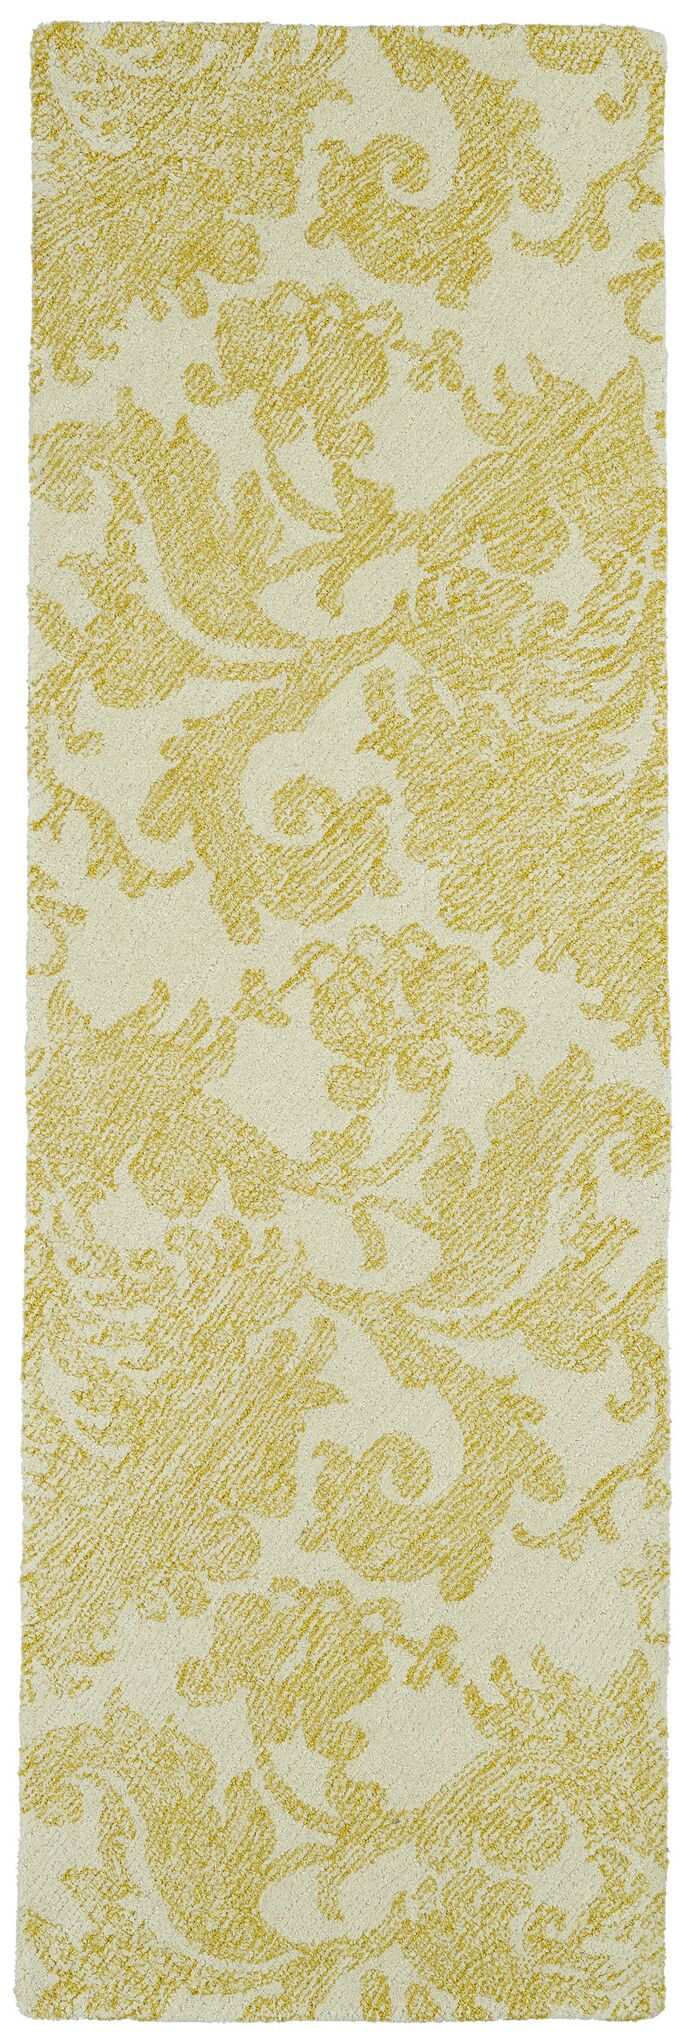 Rosalind Hand-Tufted Gold Area Rug Rug Size: Runner 2'6